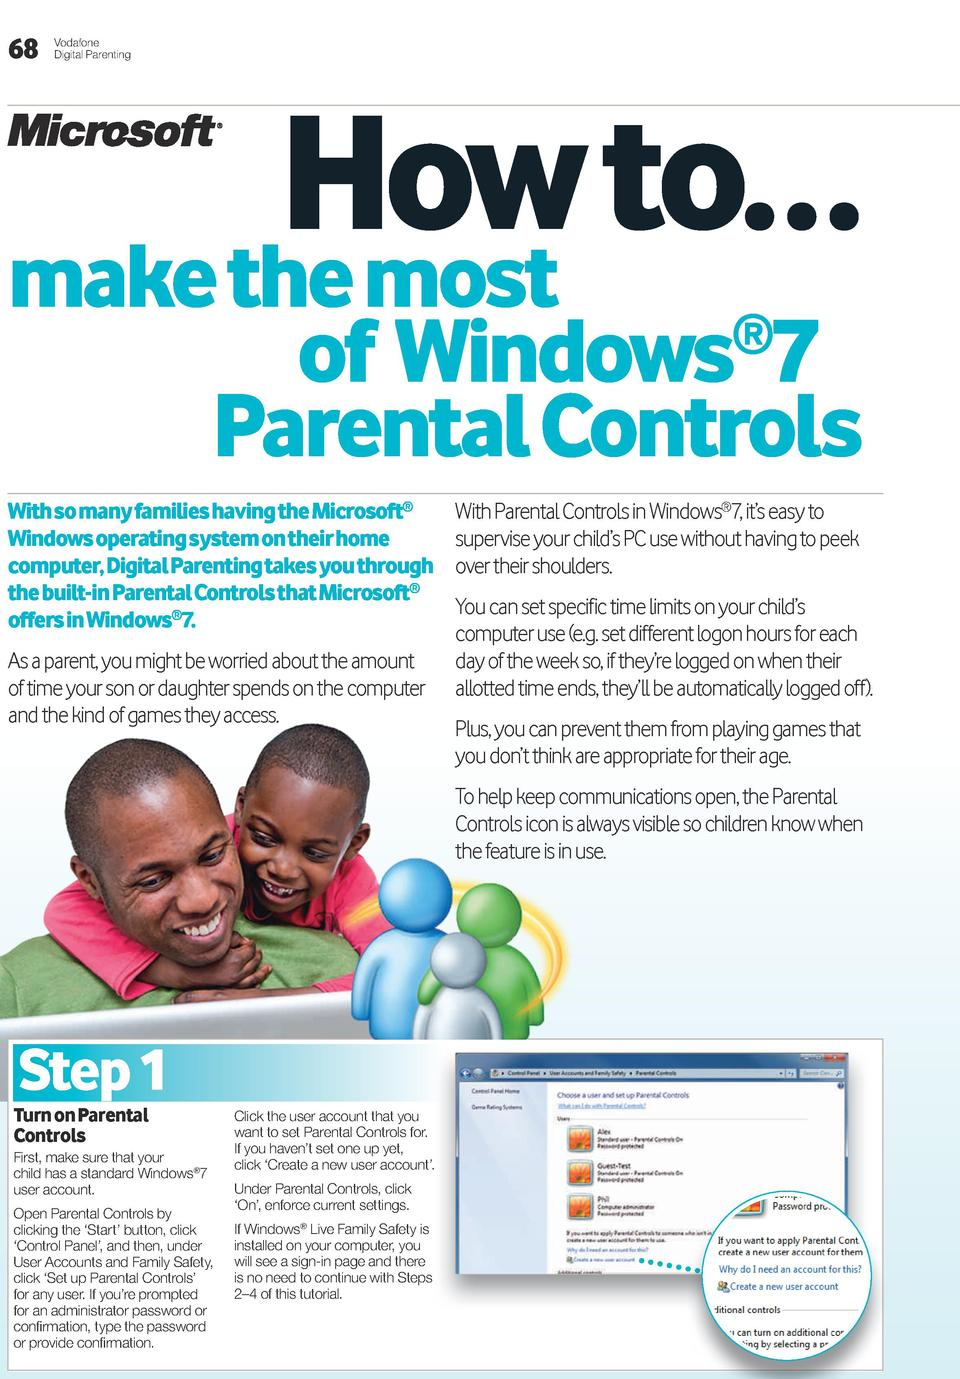 68  Vodafone Digital Parenting  How to    make the most  of Windows 7 Parental Controls     With so many families having t...